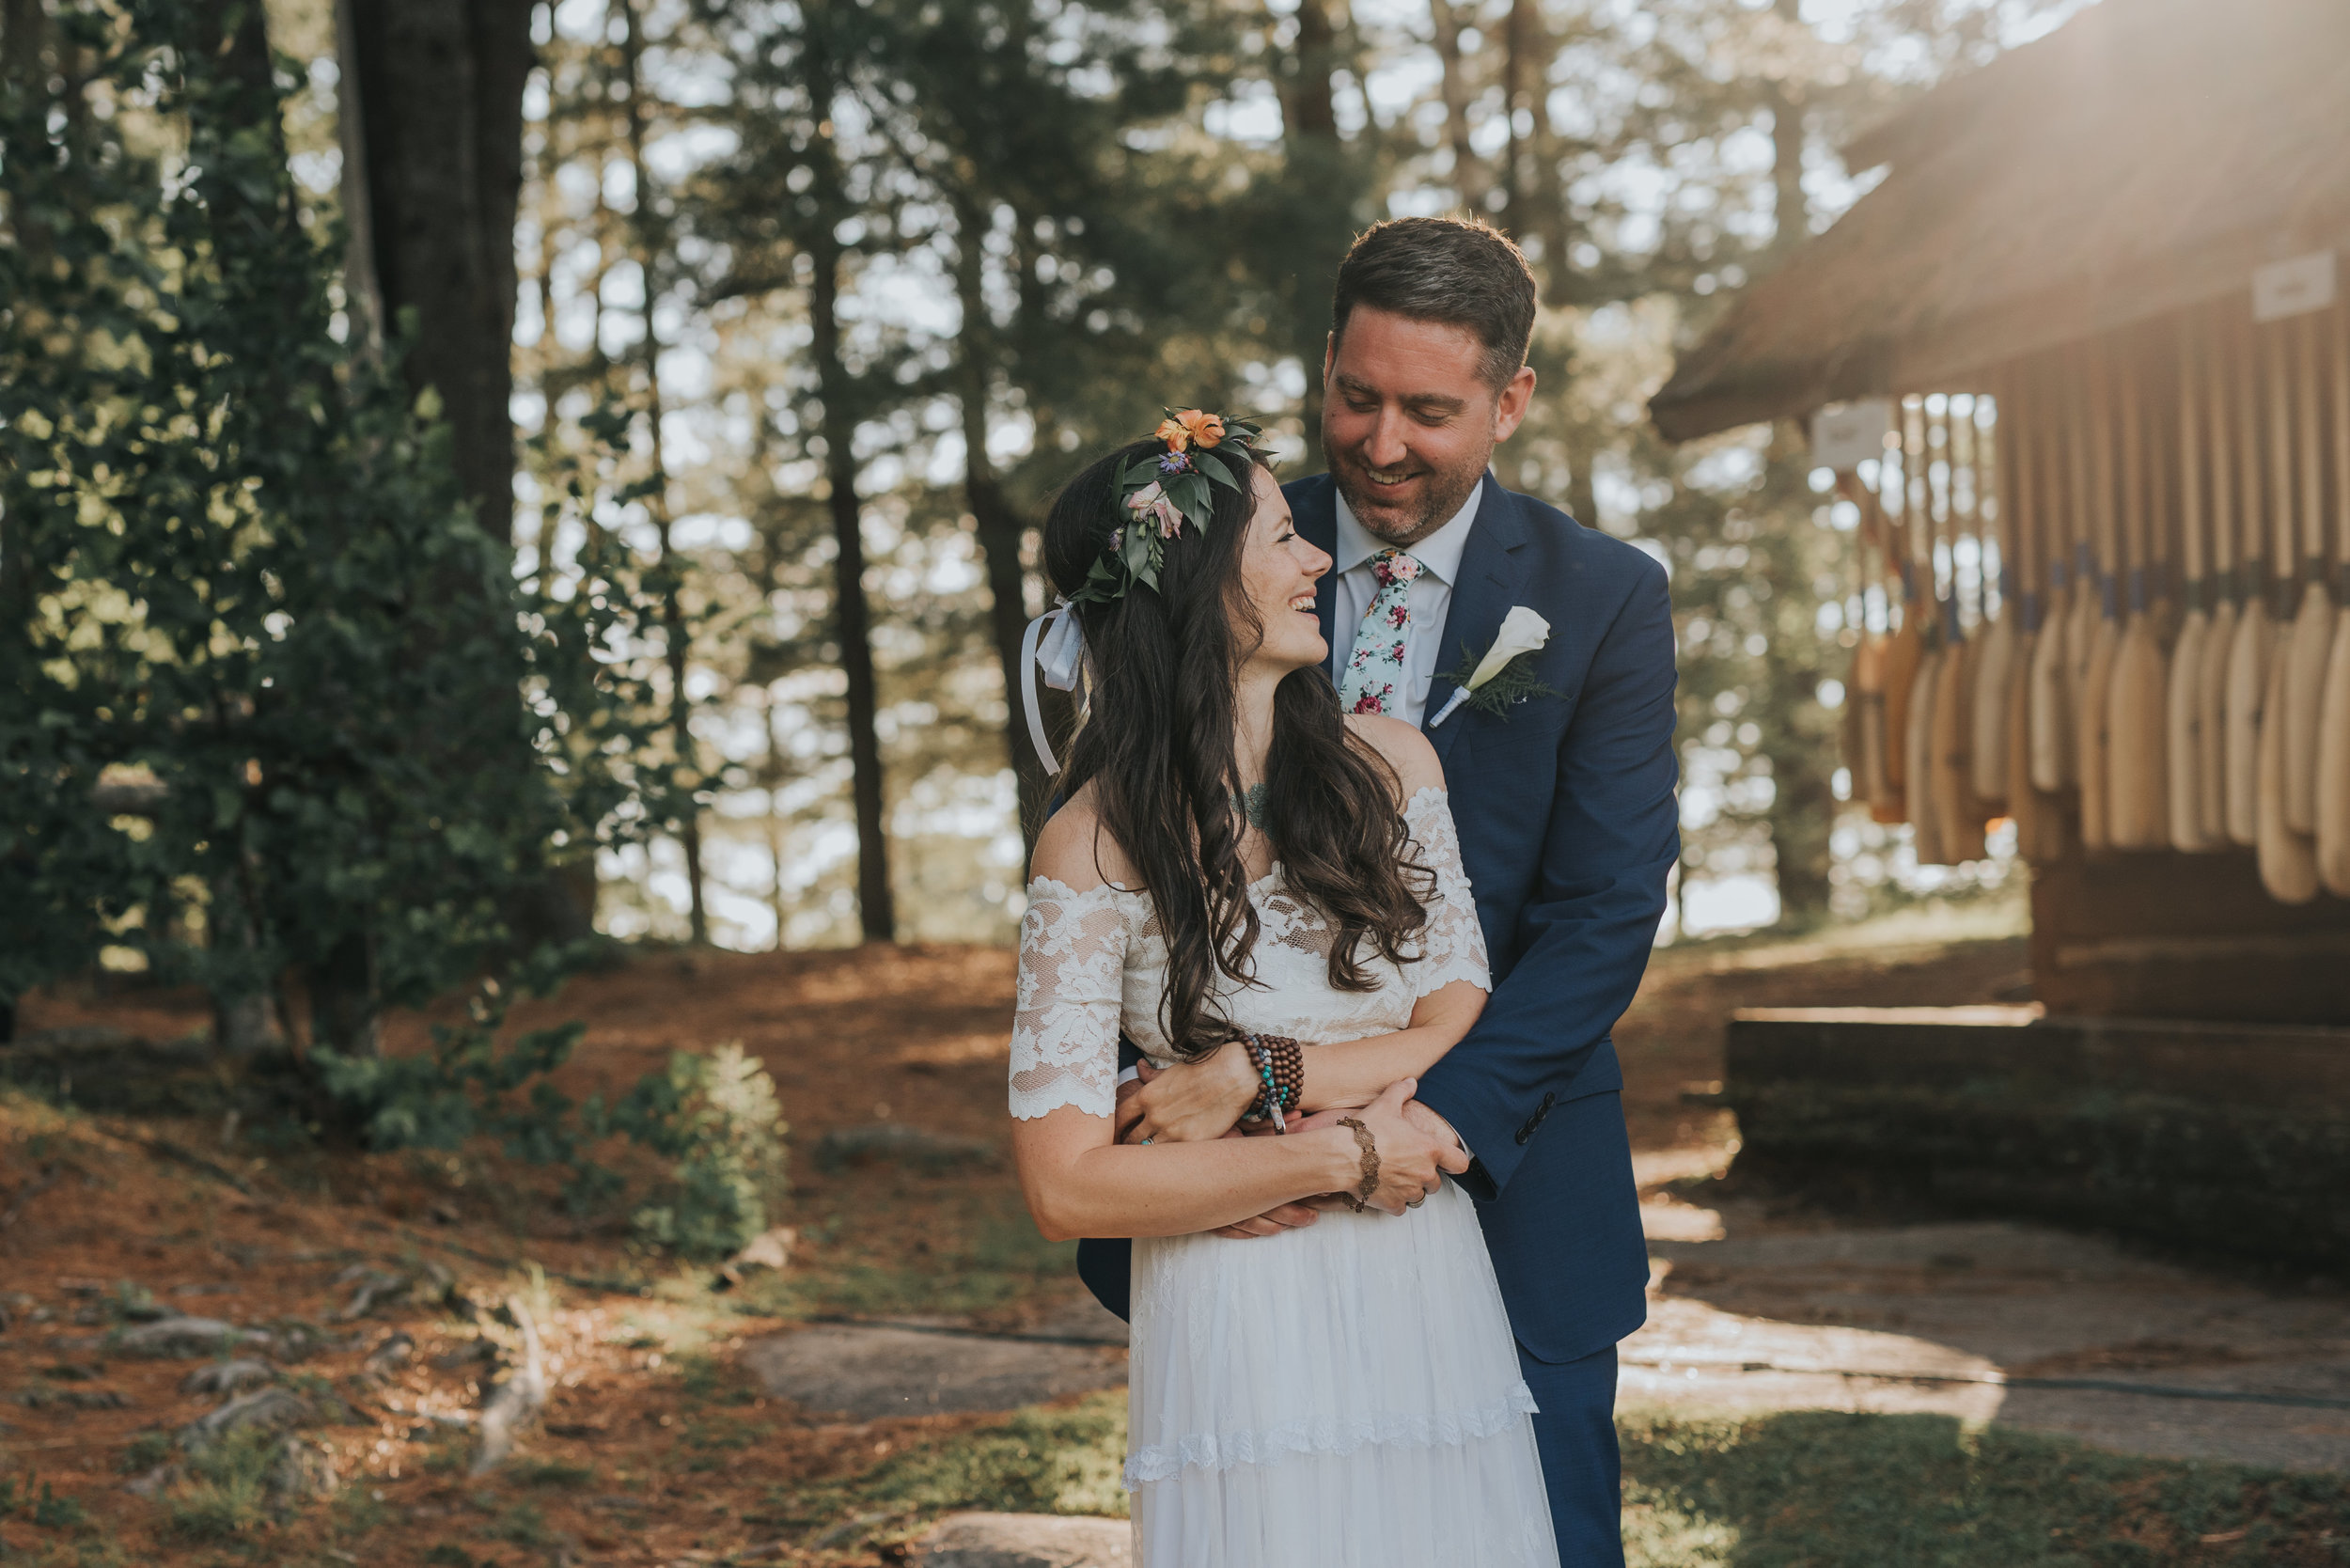 bride-groom-cuddling-rustic-cabin-toronto-bohemian-boho-outdoor-summer-wedding-documentary-wedding-photography-by-willow-birch-photo.jpg